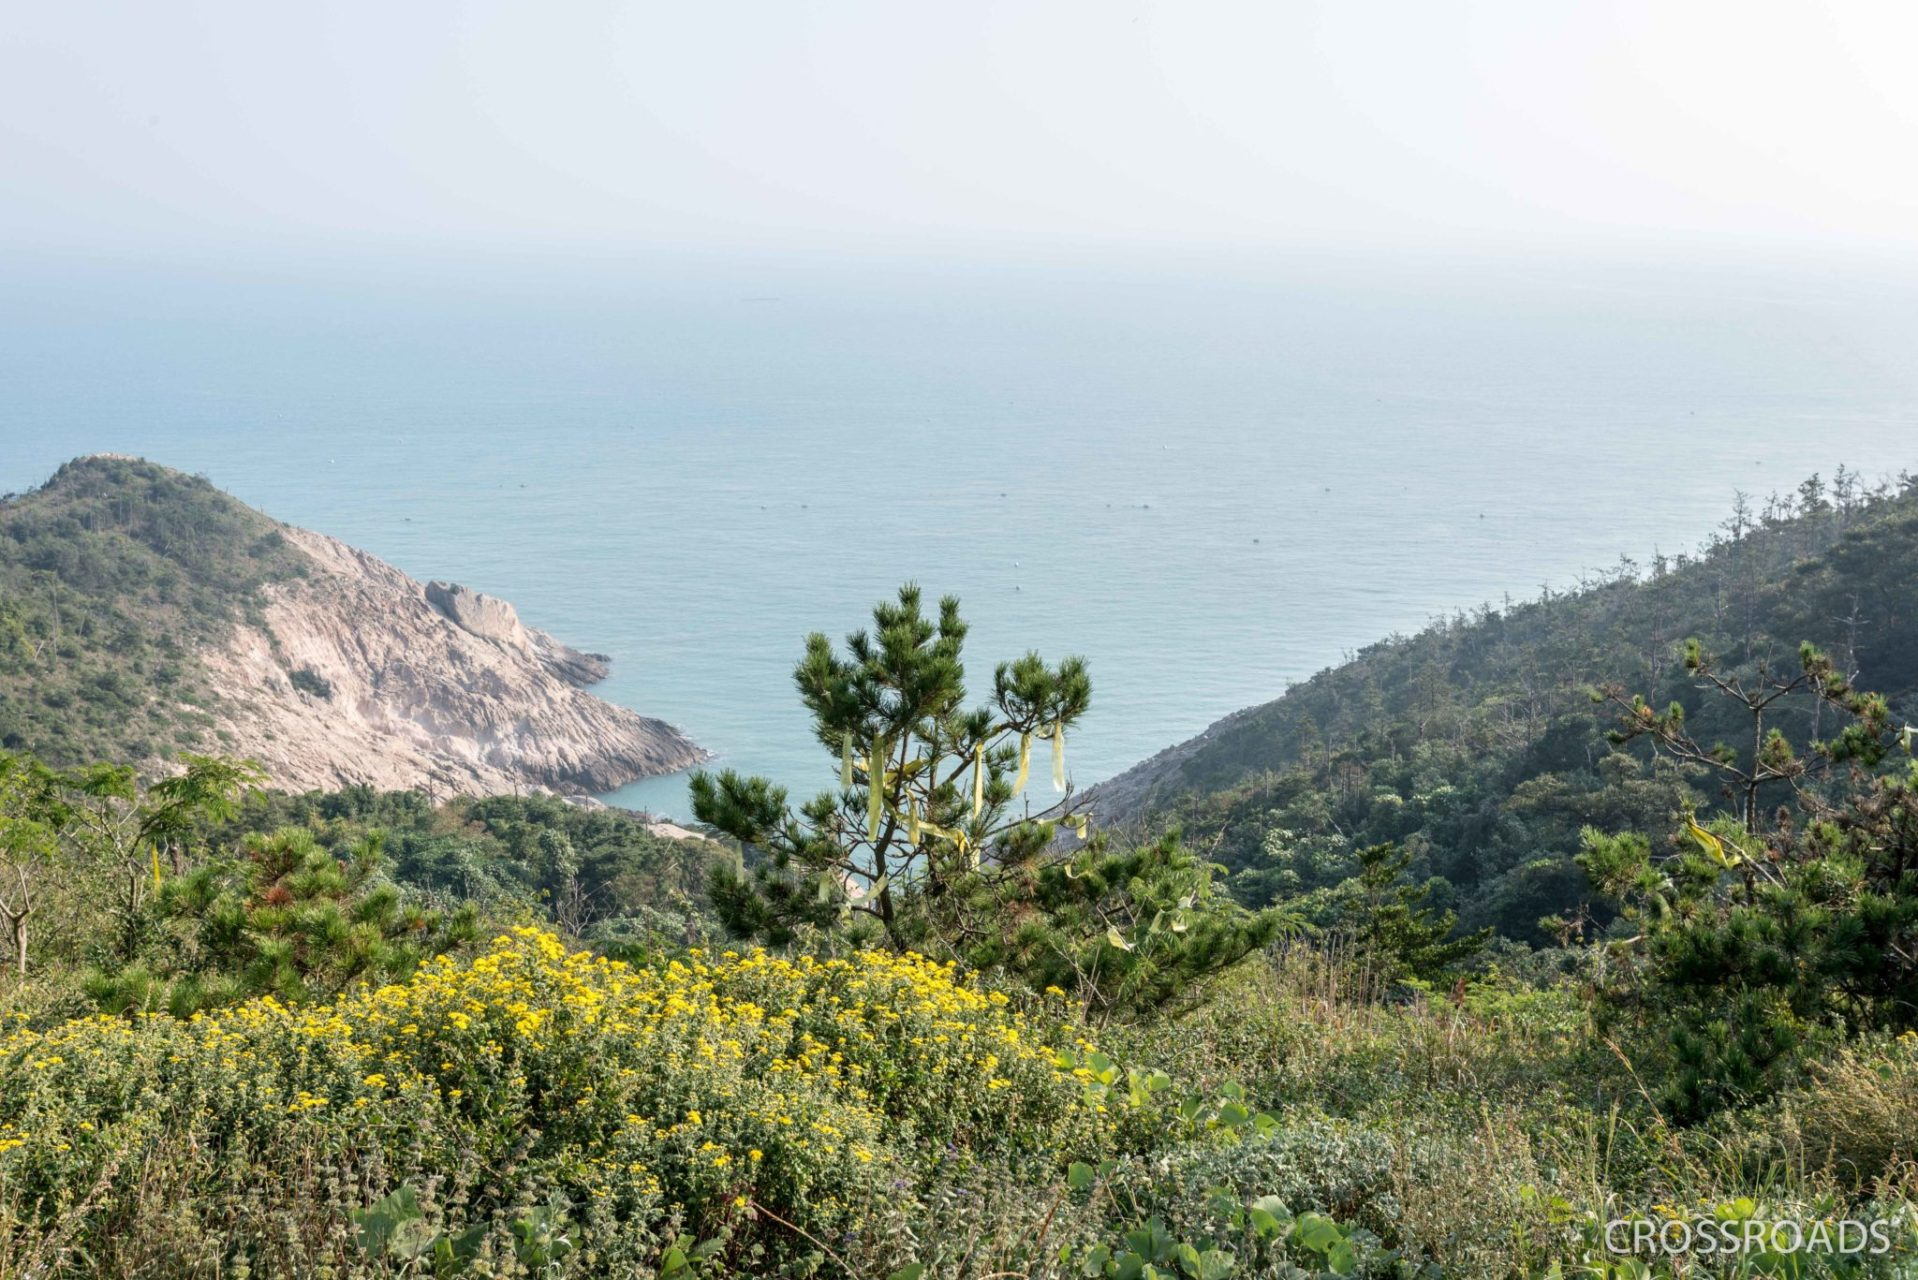 The sinking point of the Sewol Ferry is seen from the hill top at a distance of 1.6 km. The parents of the Sewol victims set up several tents – all carried up the hill on their backs – in this spot in September 2015, with some always present and watching the sea until the ferry was raised in March 2017.